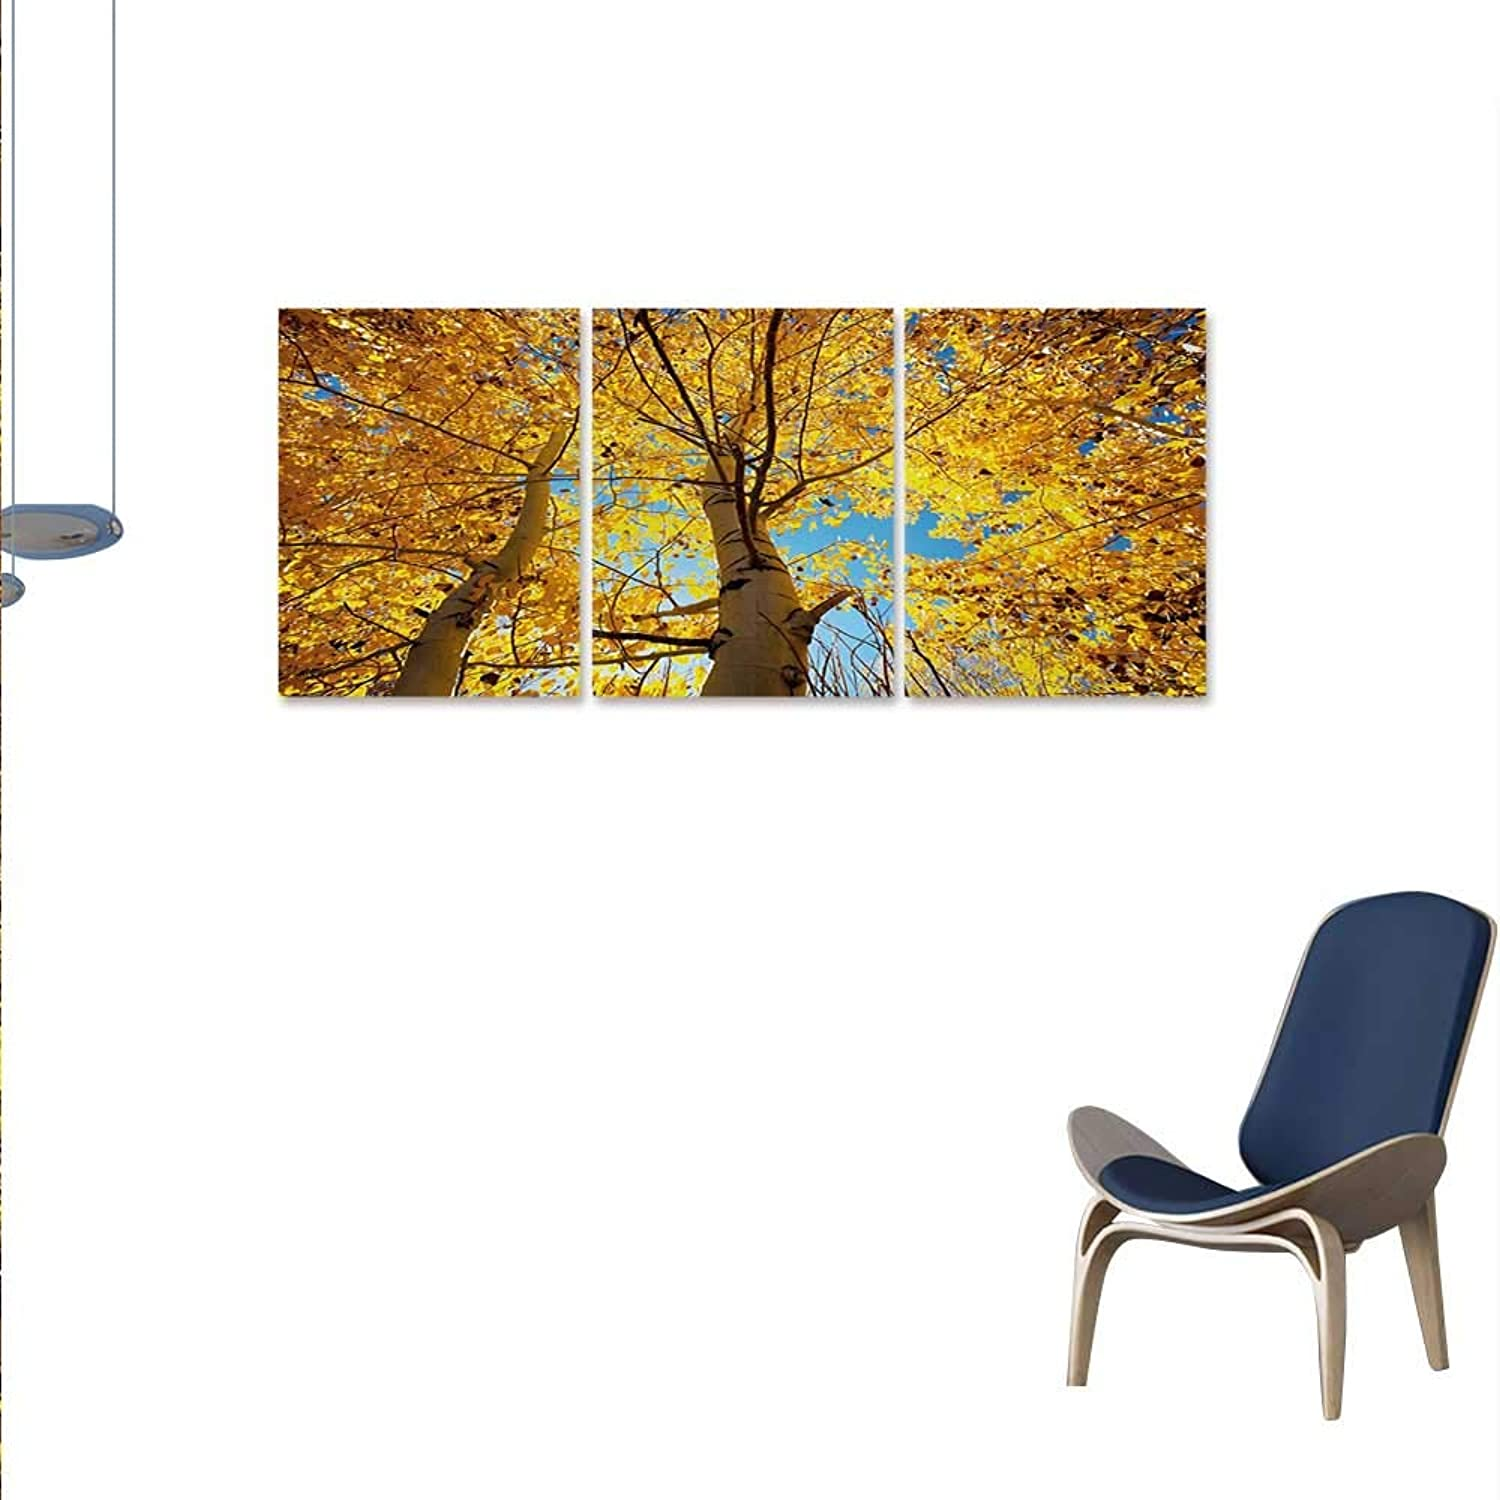 WinfreyDecor Nature Canvas Print Wall Art Autumn Fall Season Trees Forest Leaves Branches Sunbeams Art Photo Aall Art Stickers 16 x24 x3pcs Earth Yellow Sand Brown